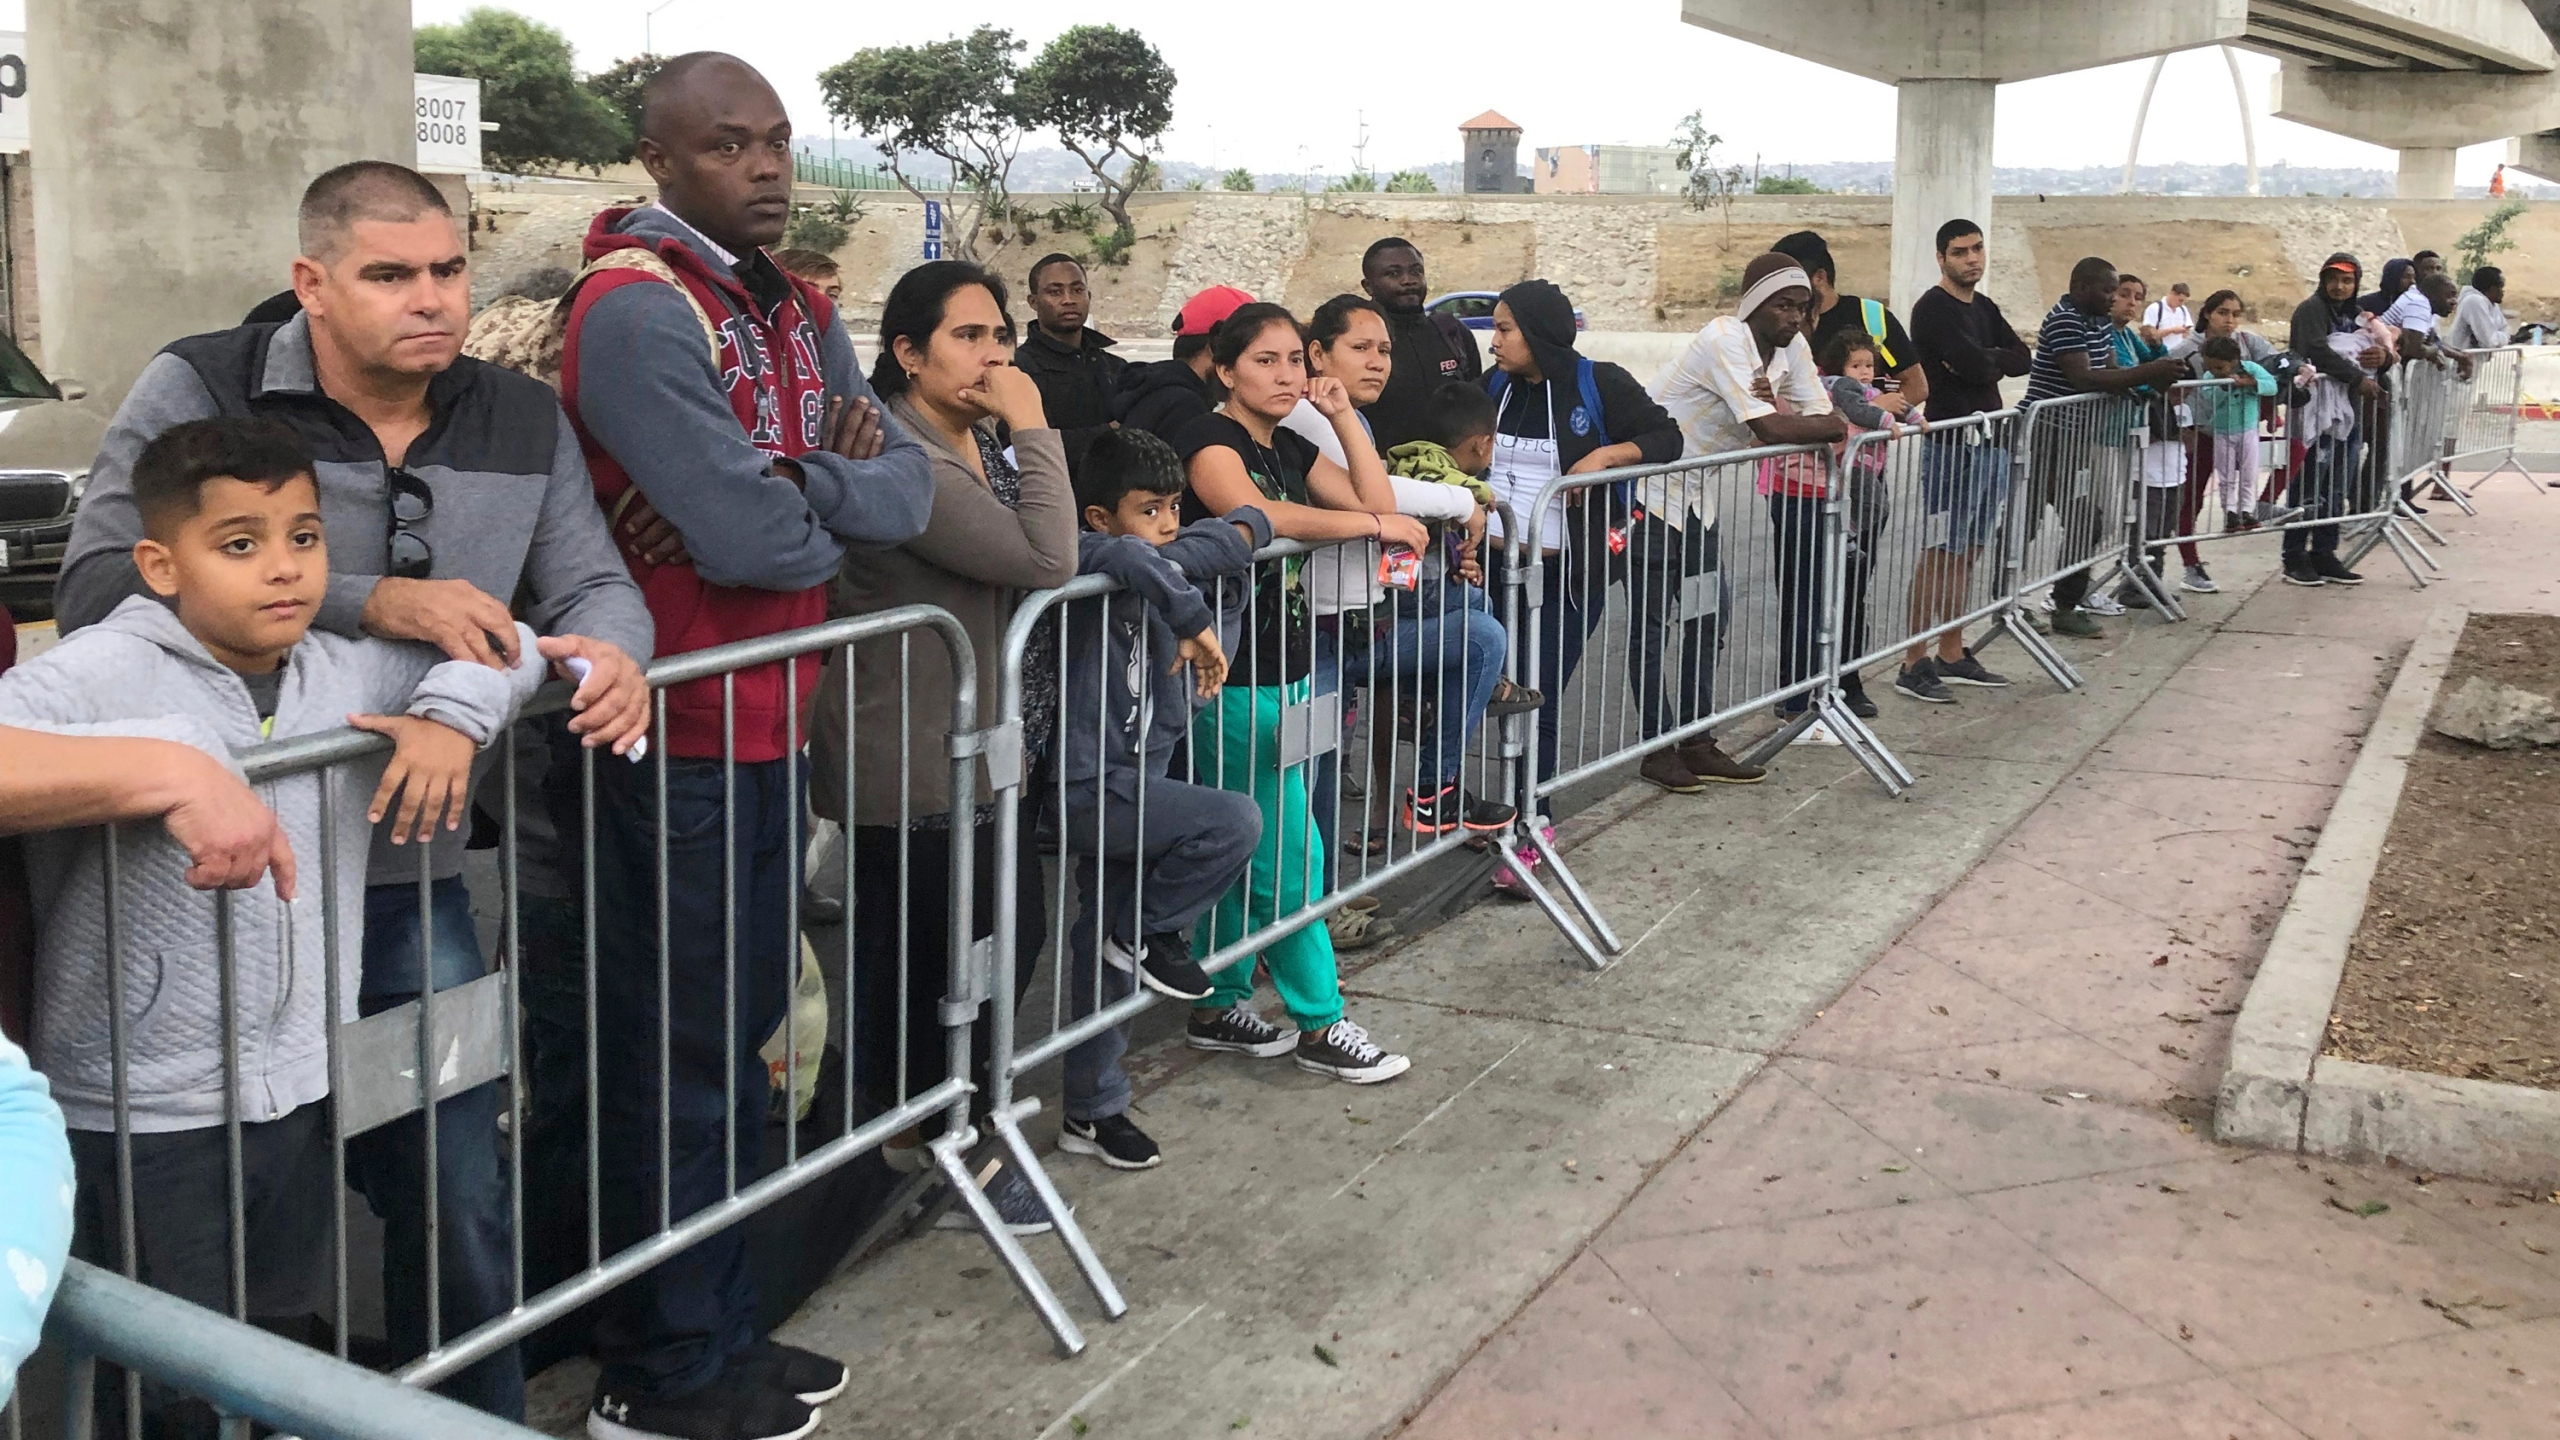 Asylum seekers in Tijuana, Mexico, listen to names being called from a waiting list to claim asylum at a border crossing in San Diego on Sept. 26, 2019. (AP Photo/Elliot Spagat,File)